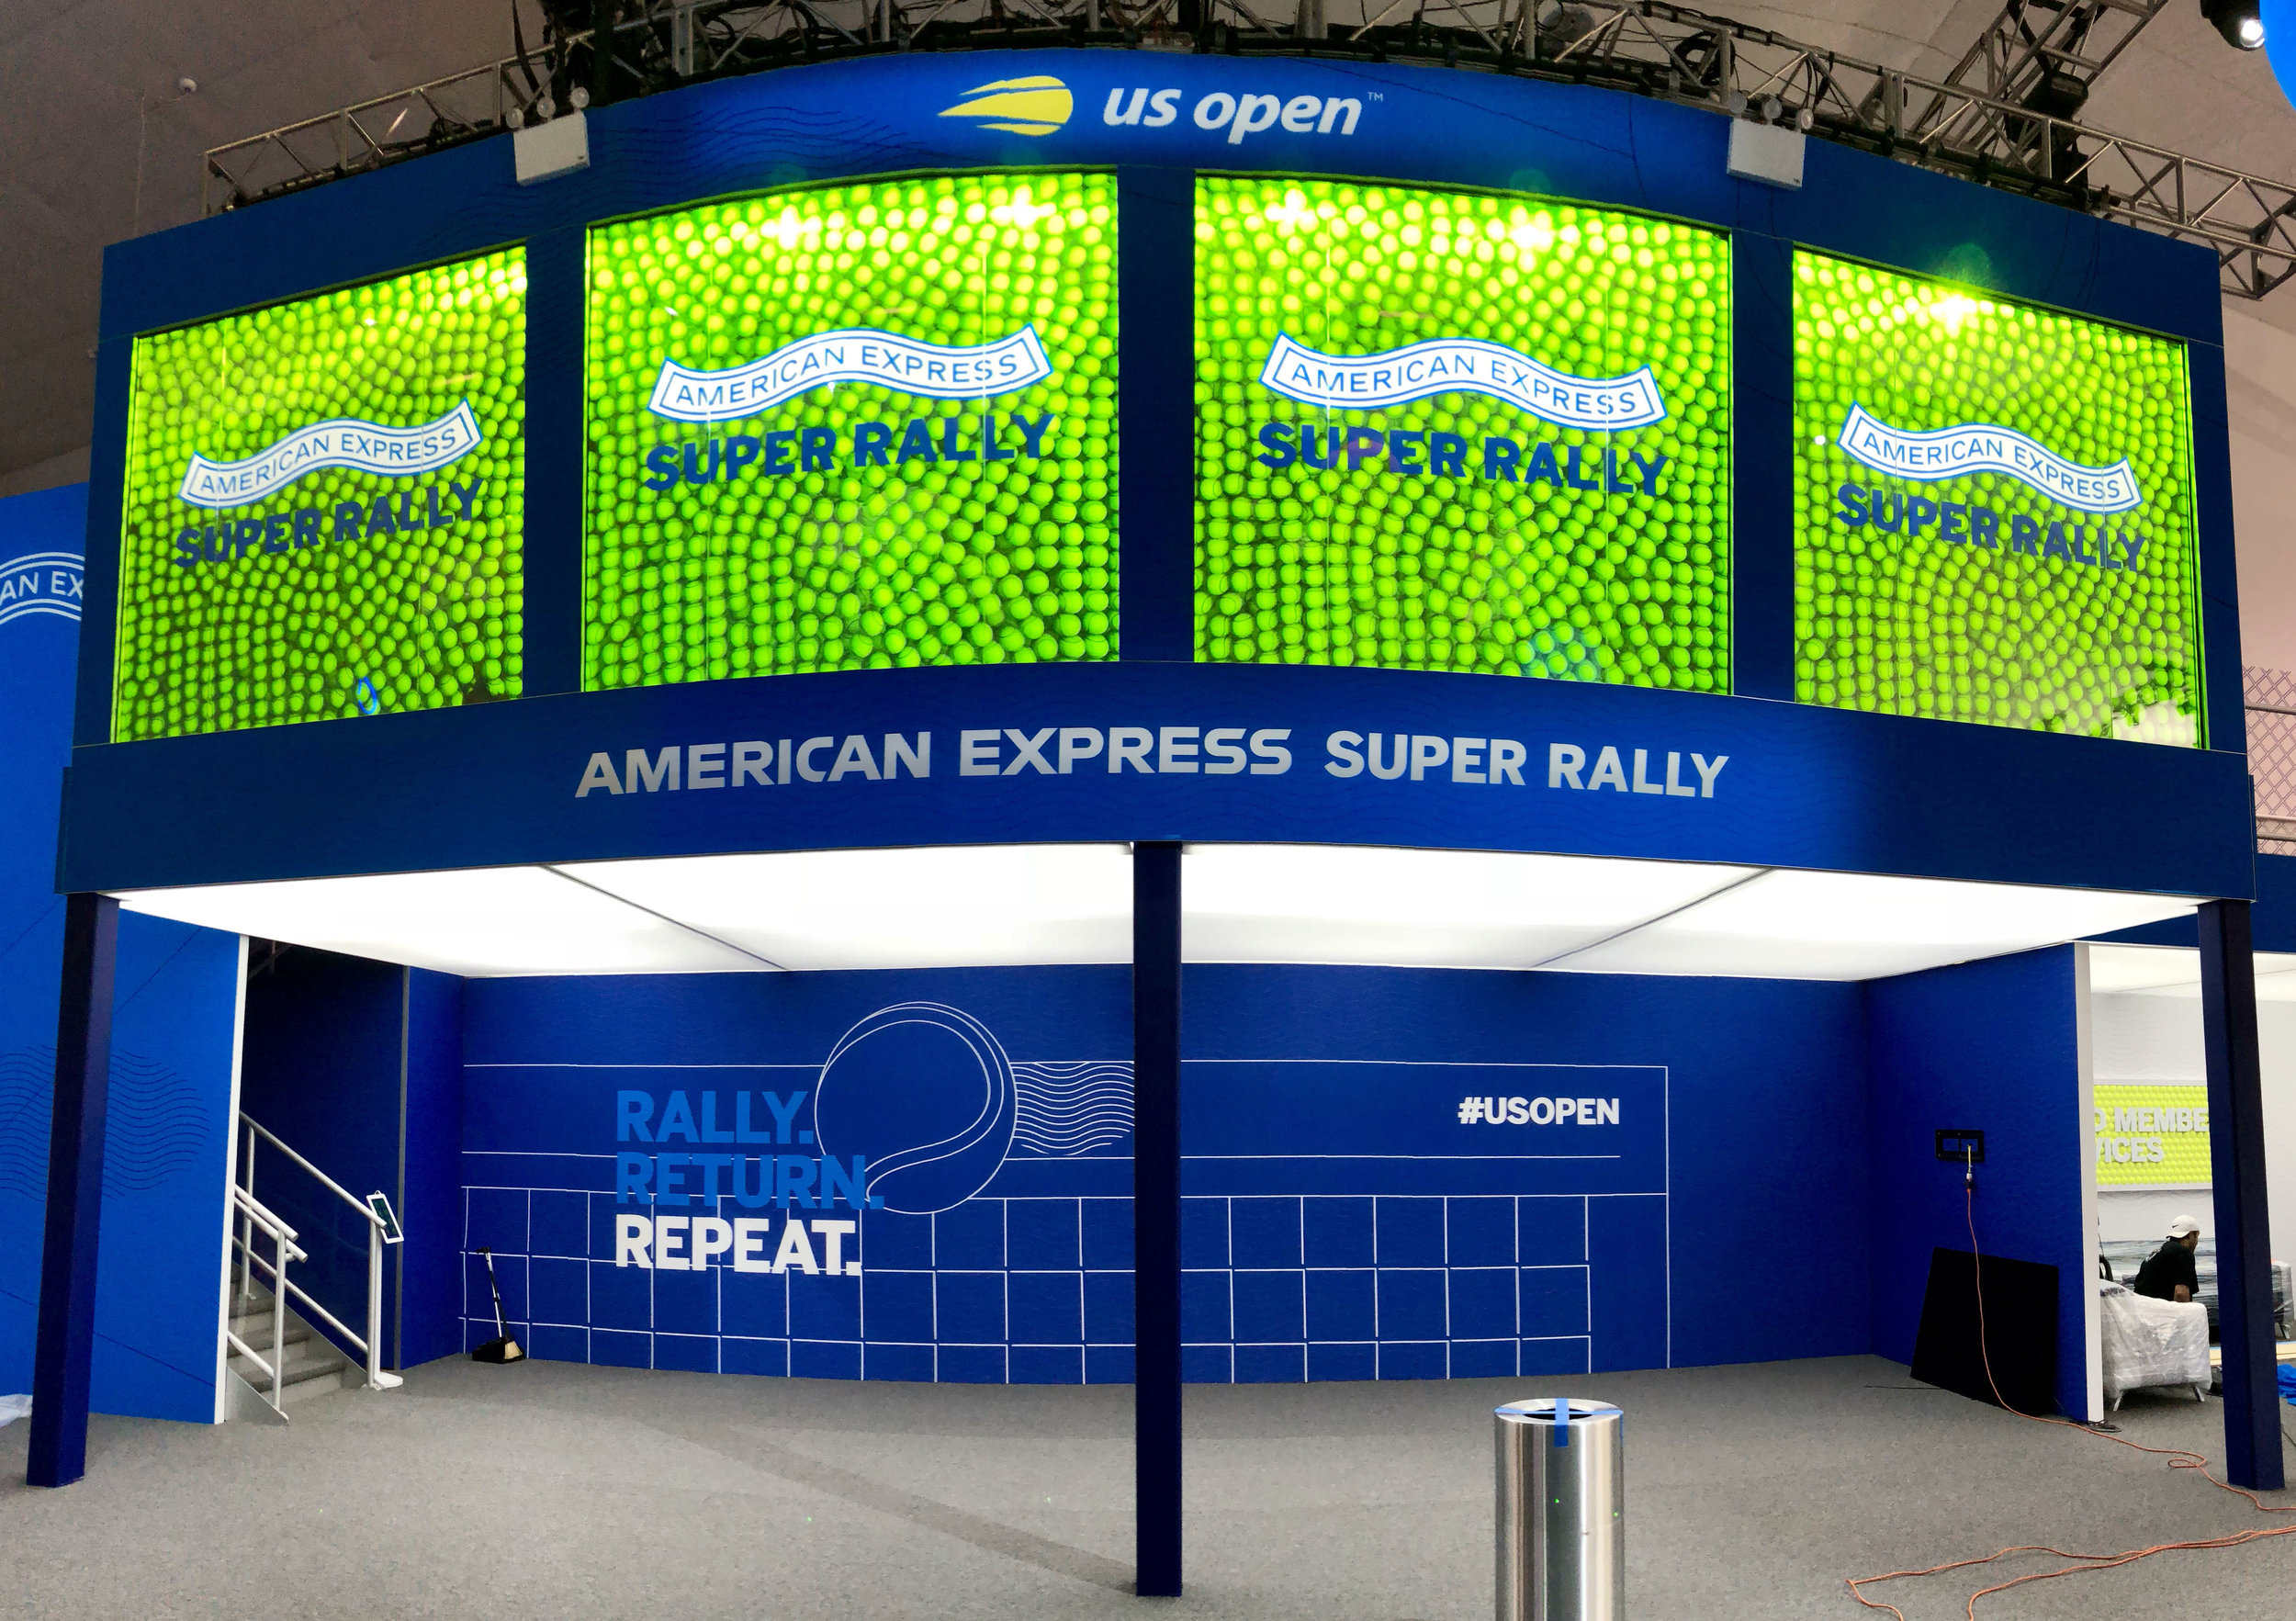 """""""Amex is Upping its Technology Game to Turn Heads at the U.S. Open""""– Adweek -"""